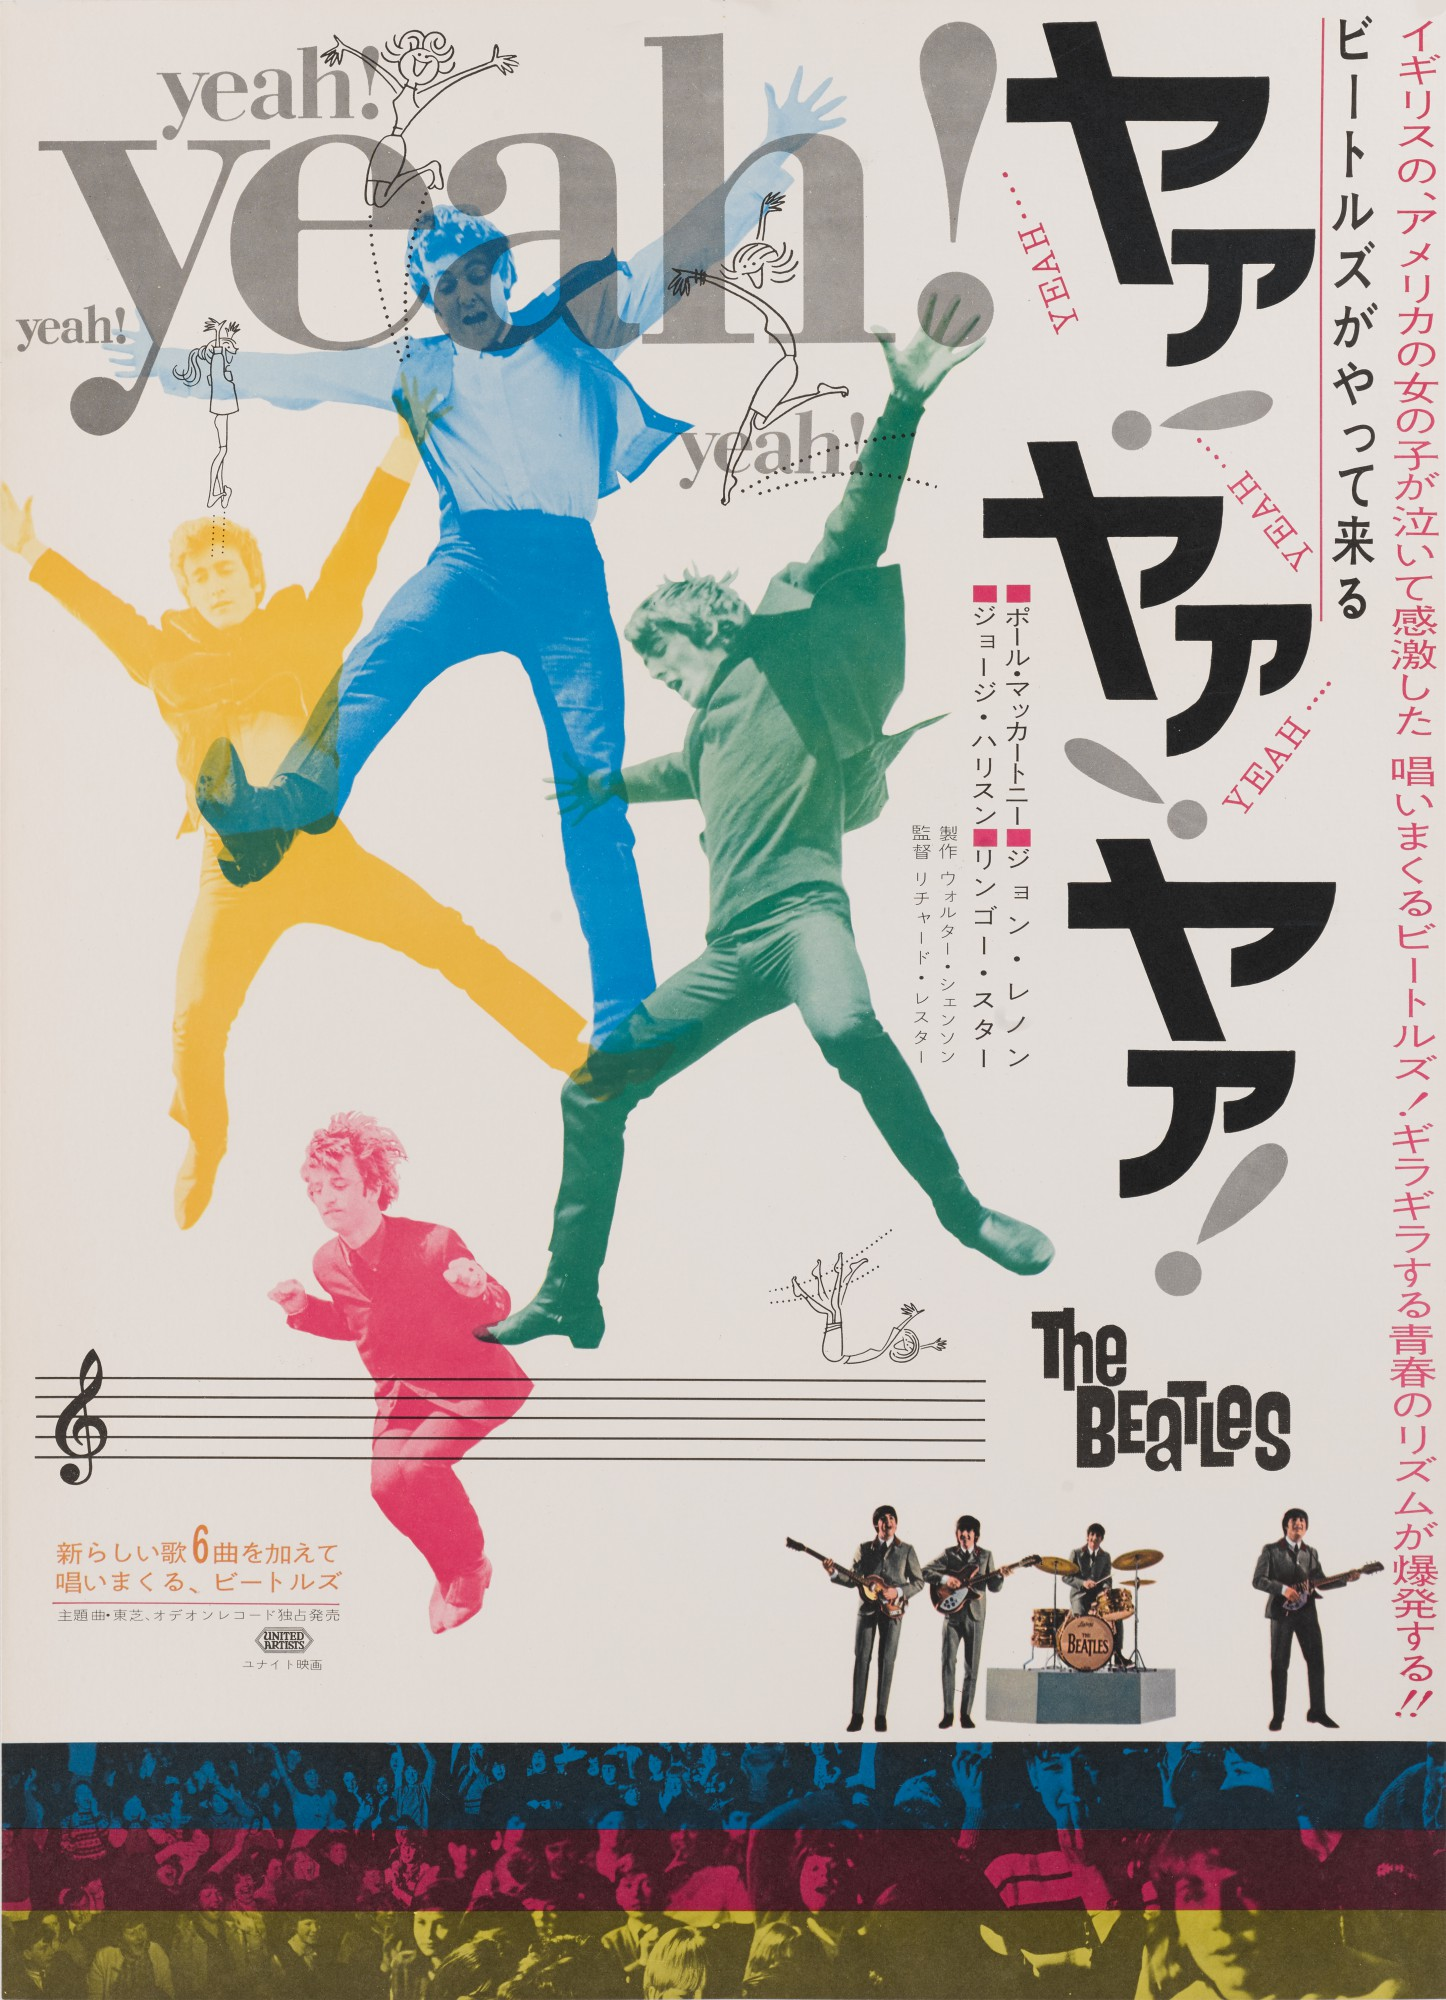 A HARD DAY'S NIGHT (1964) POSTER, JAPANESE